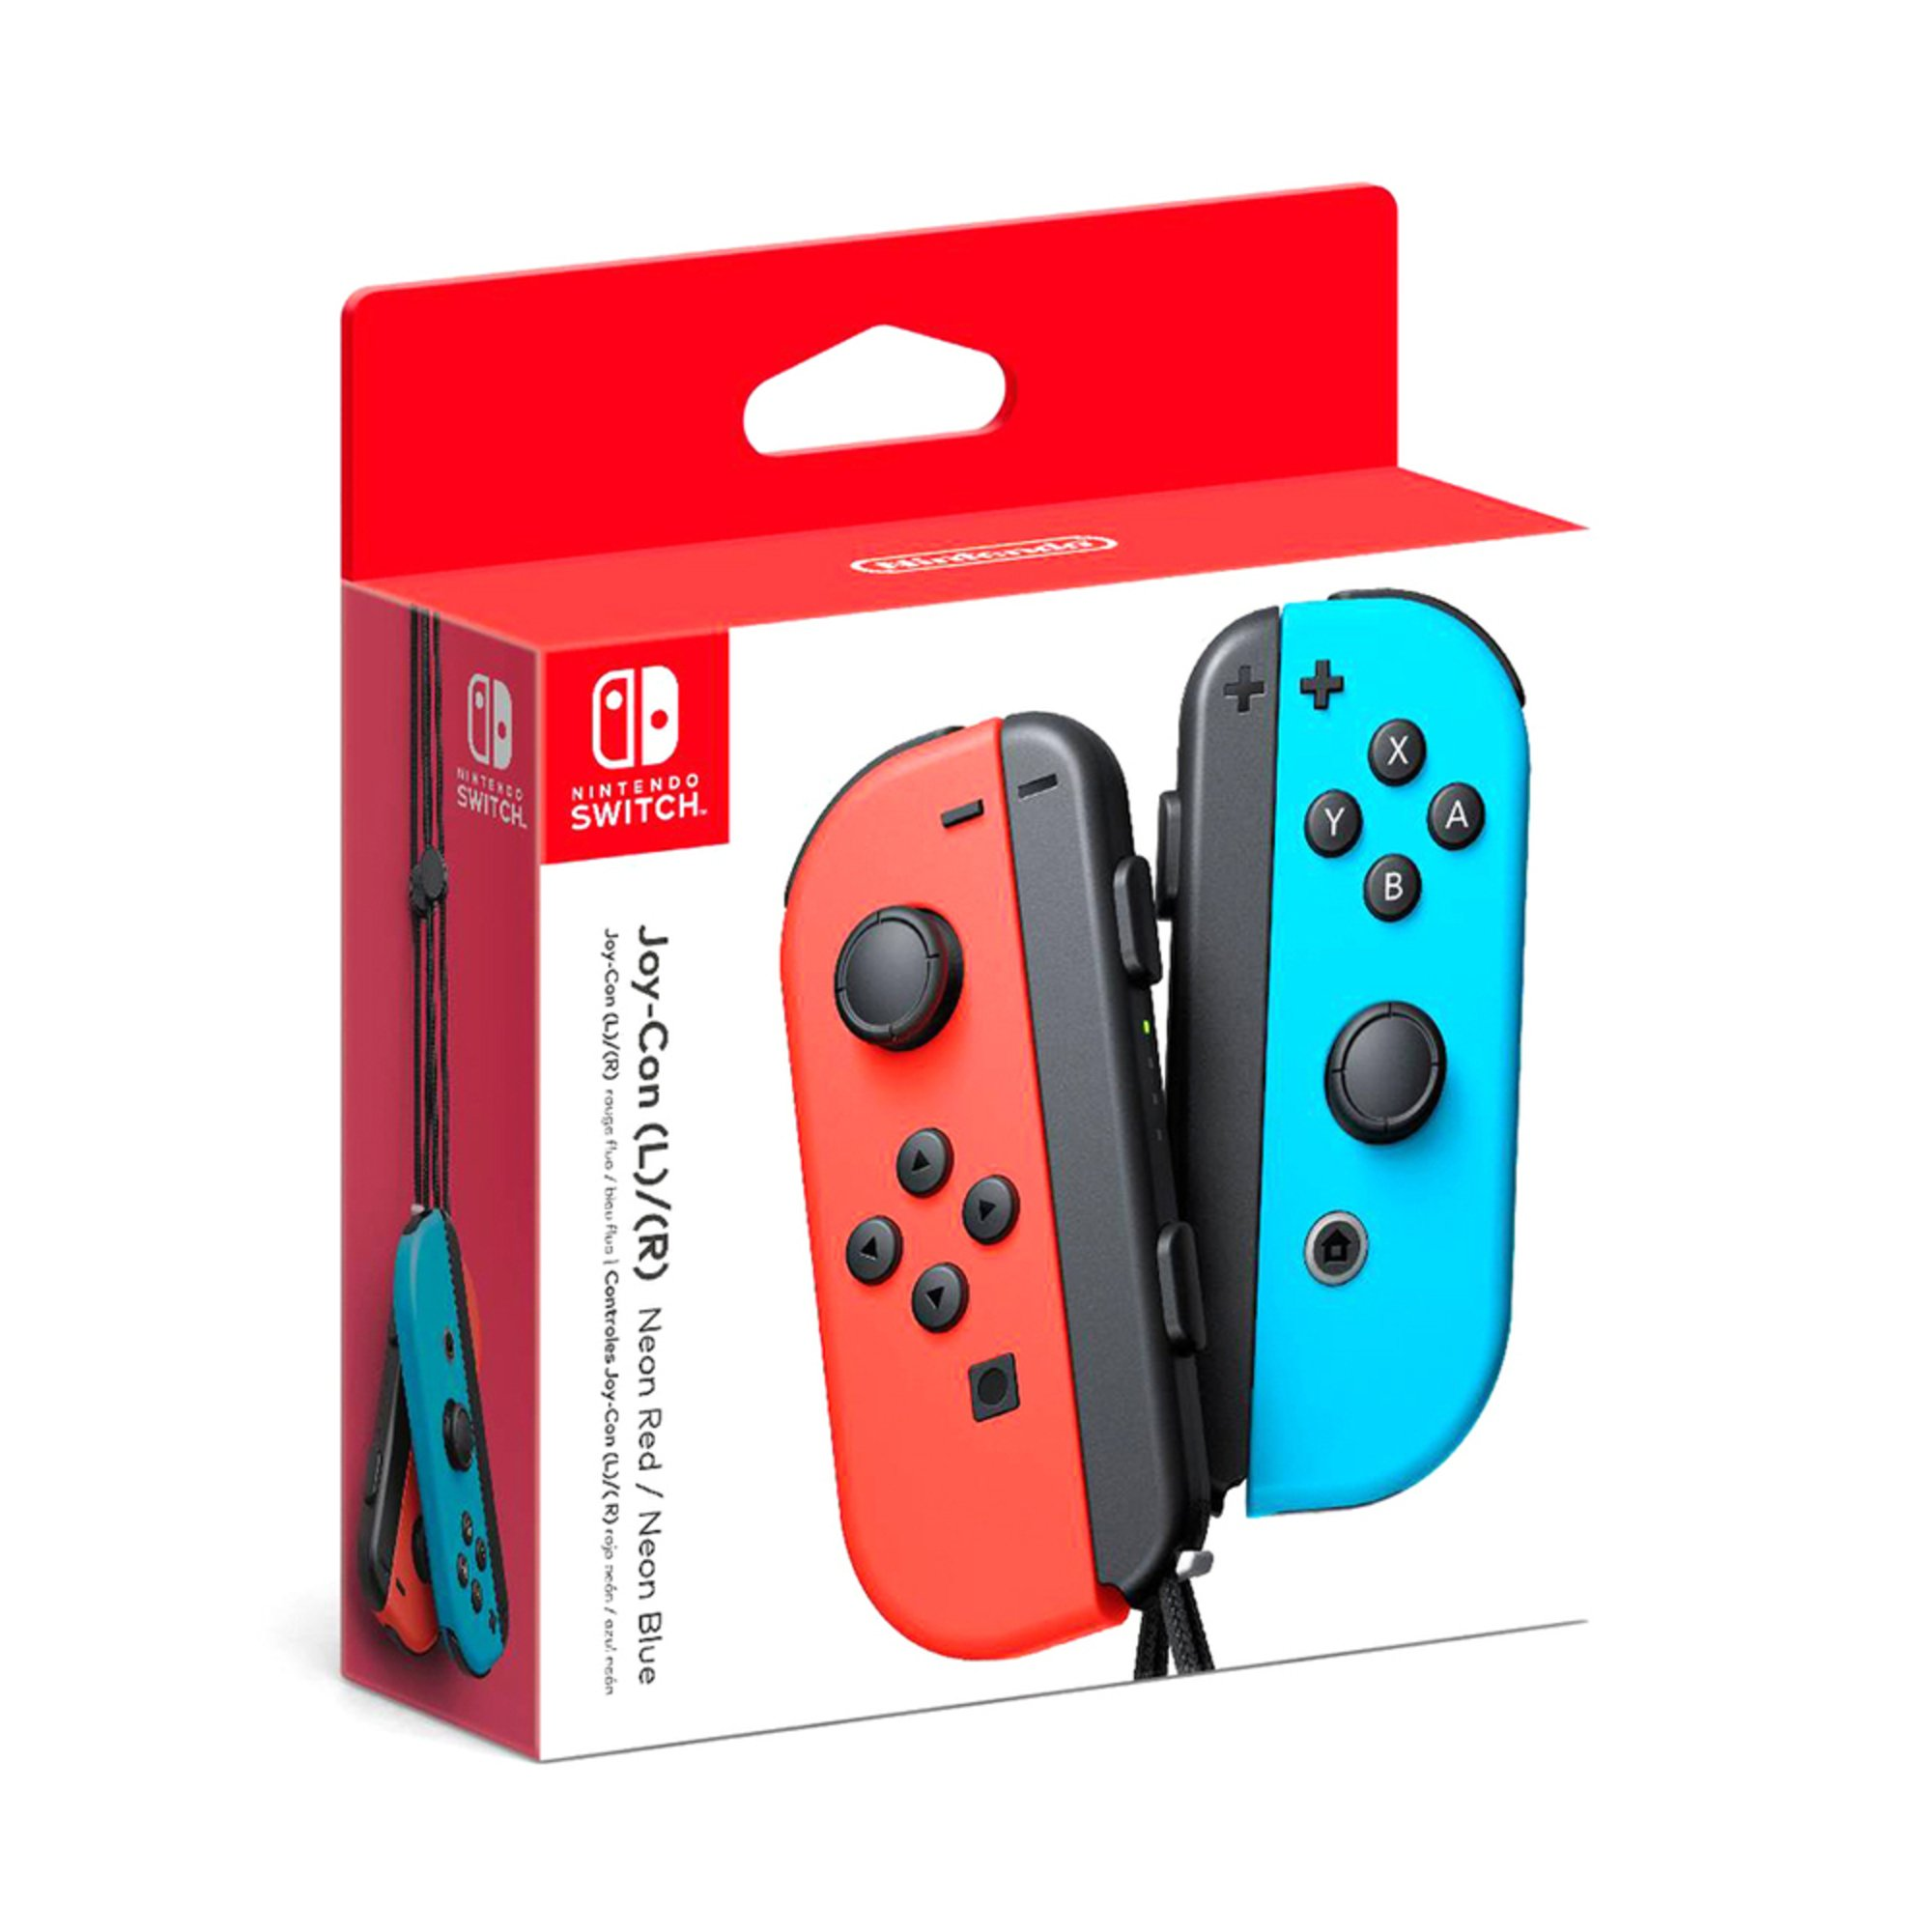 Nintendo Switch | Shop Your Navy Exchange - Official Site